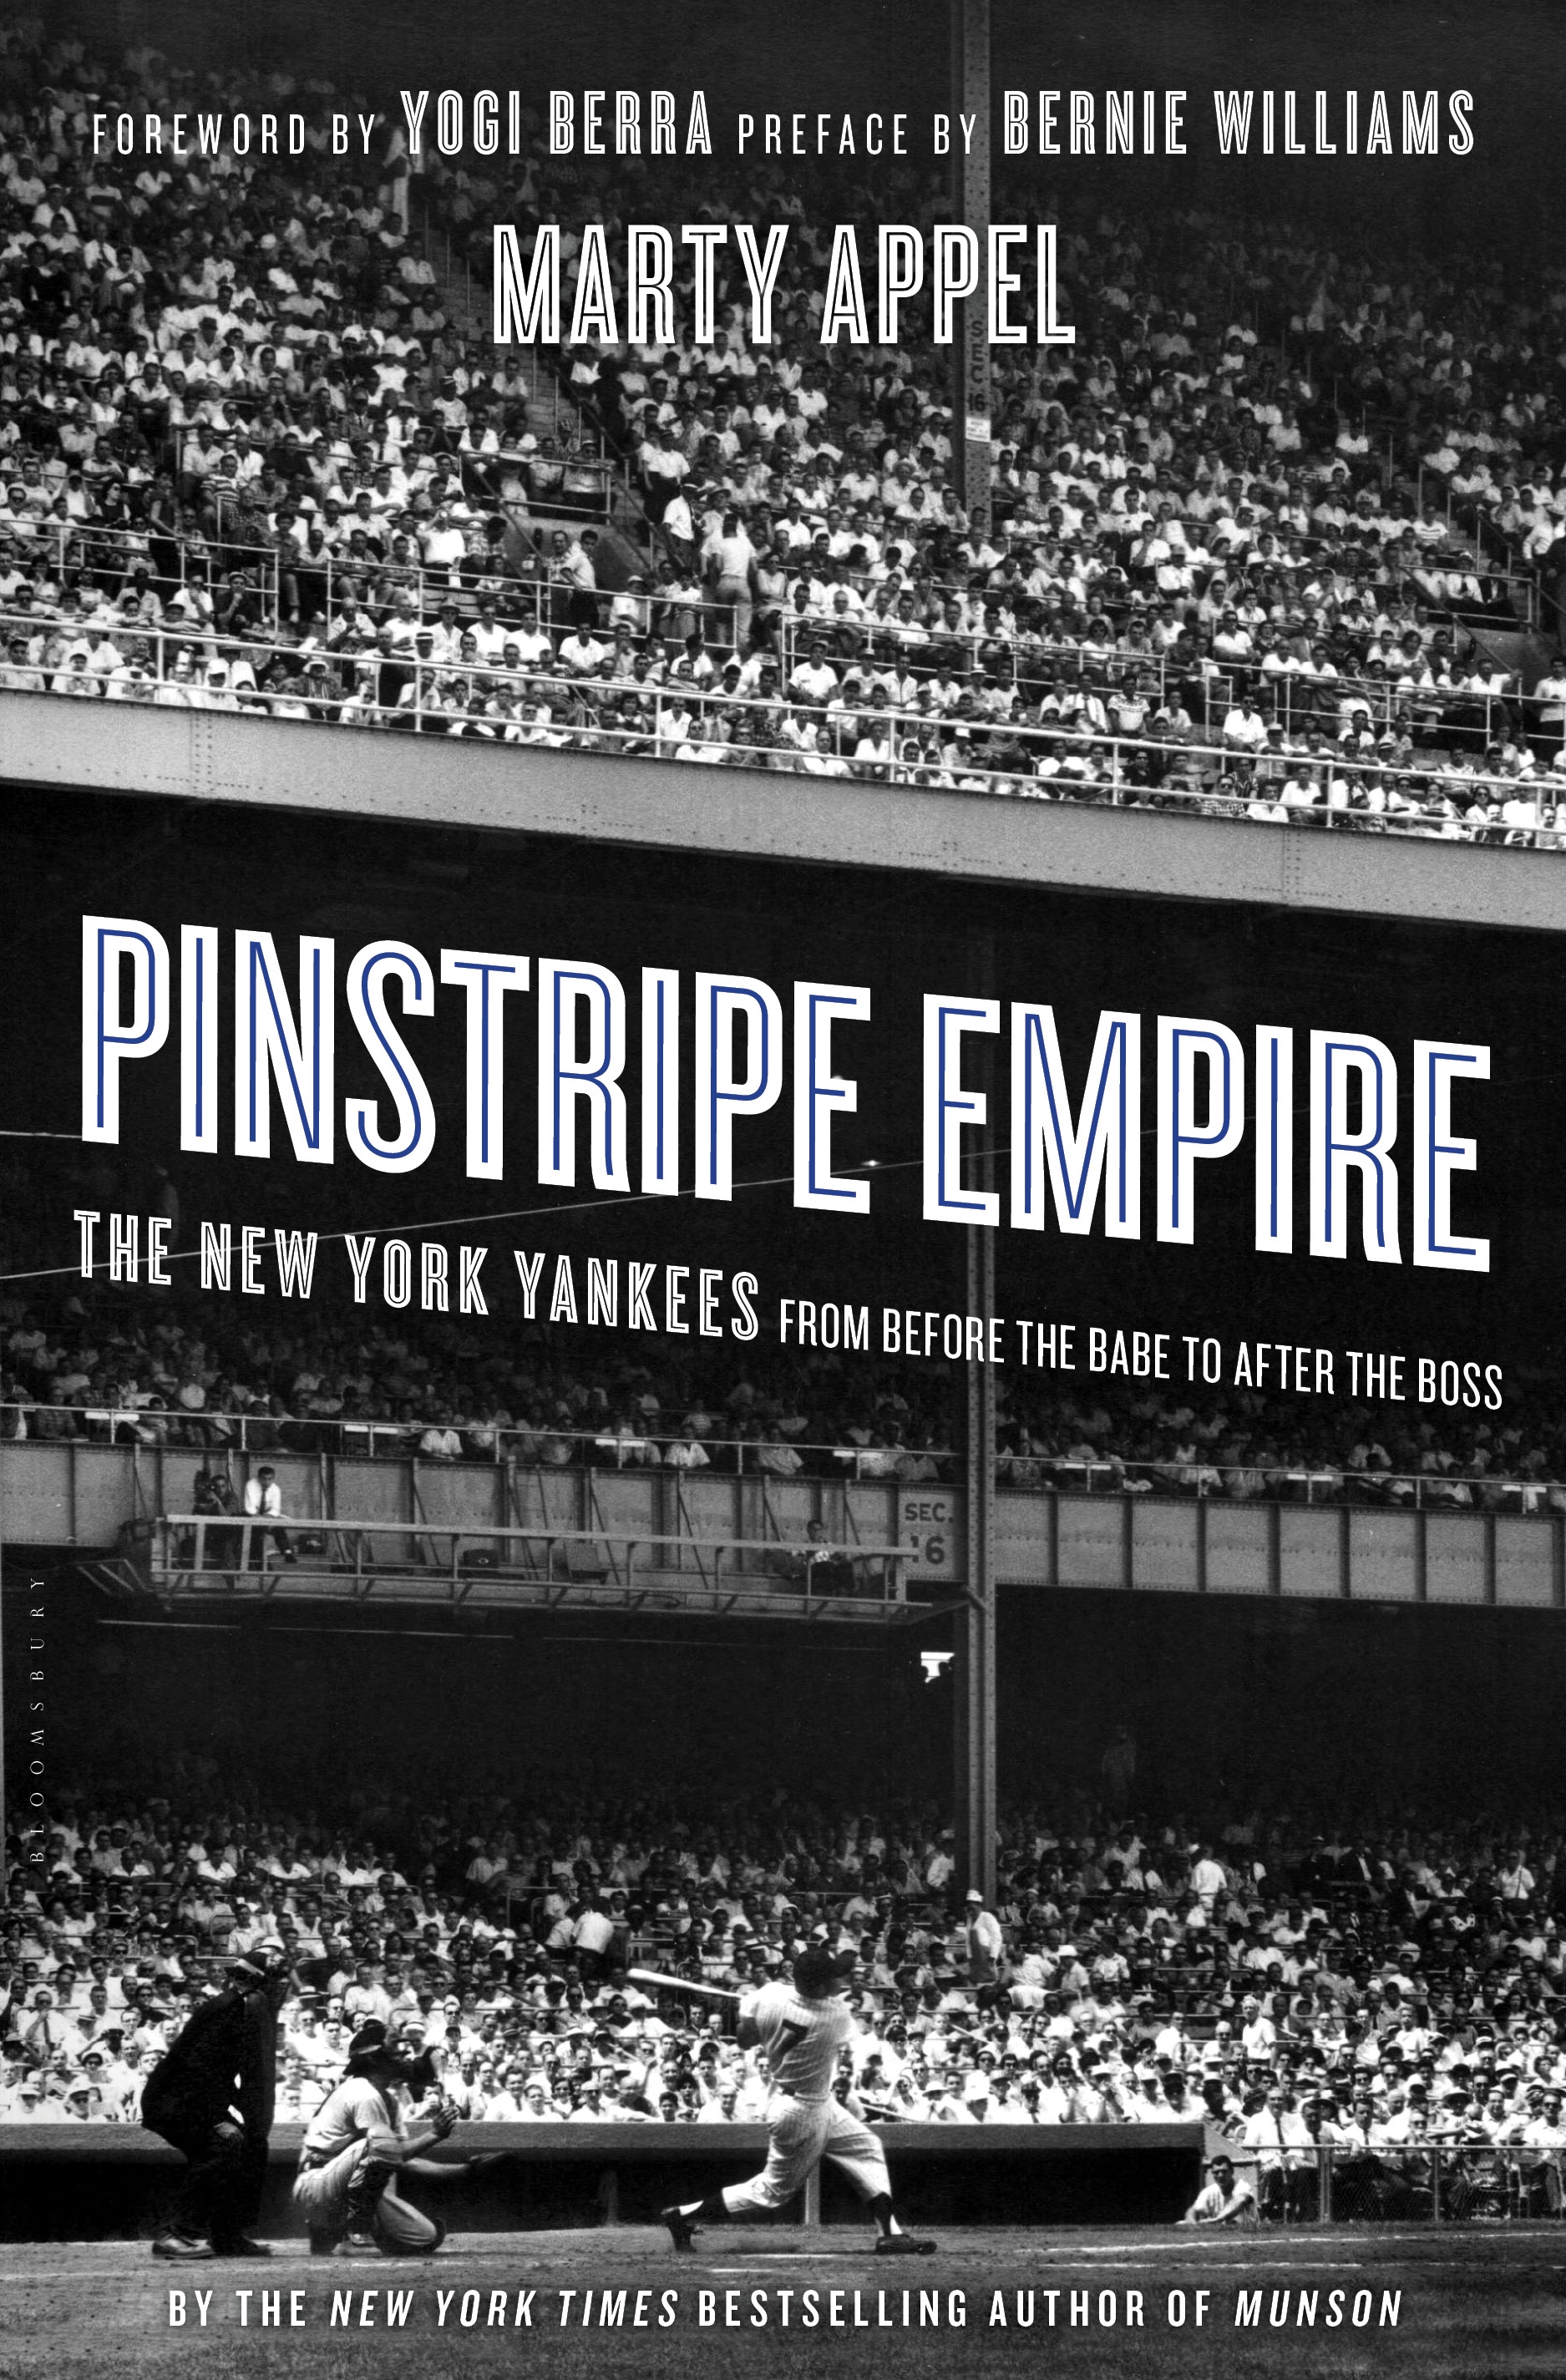 Pinstripe Empire The New York Yankees from Before the Babe to After the Boss